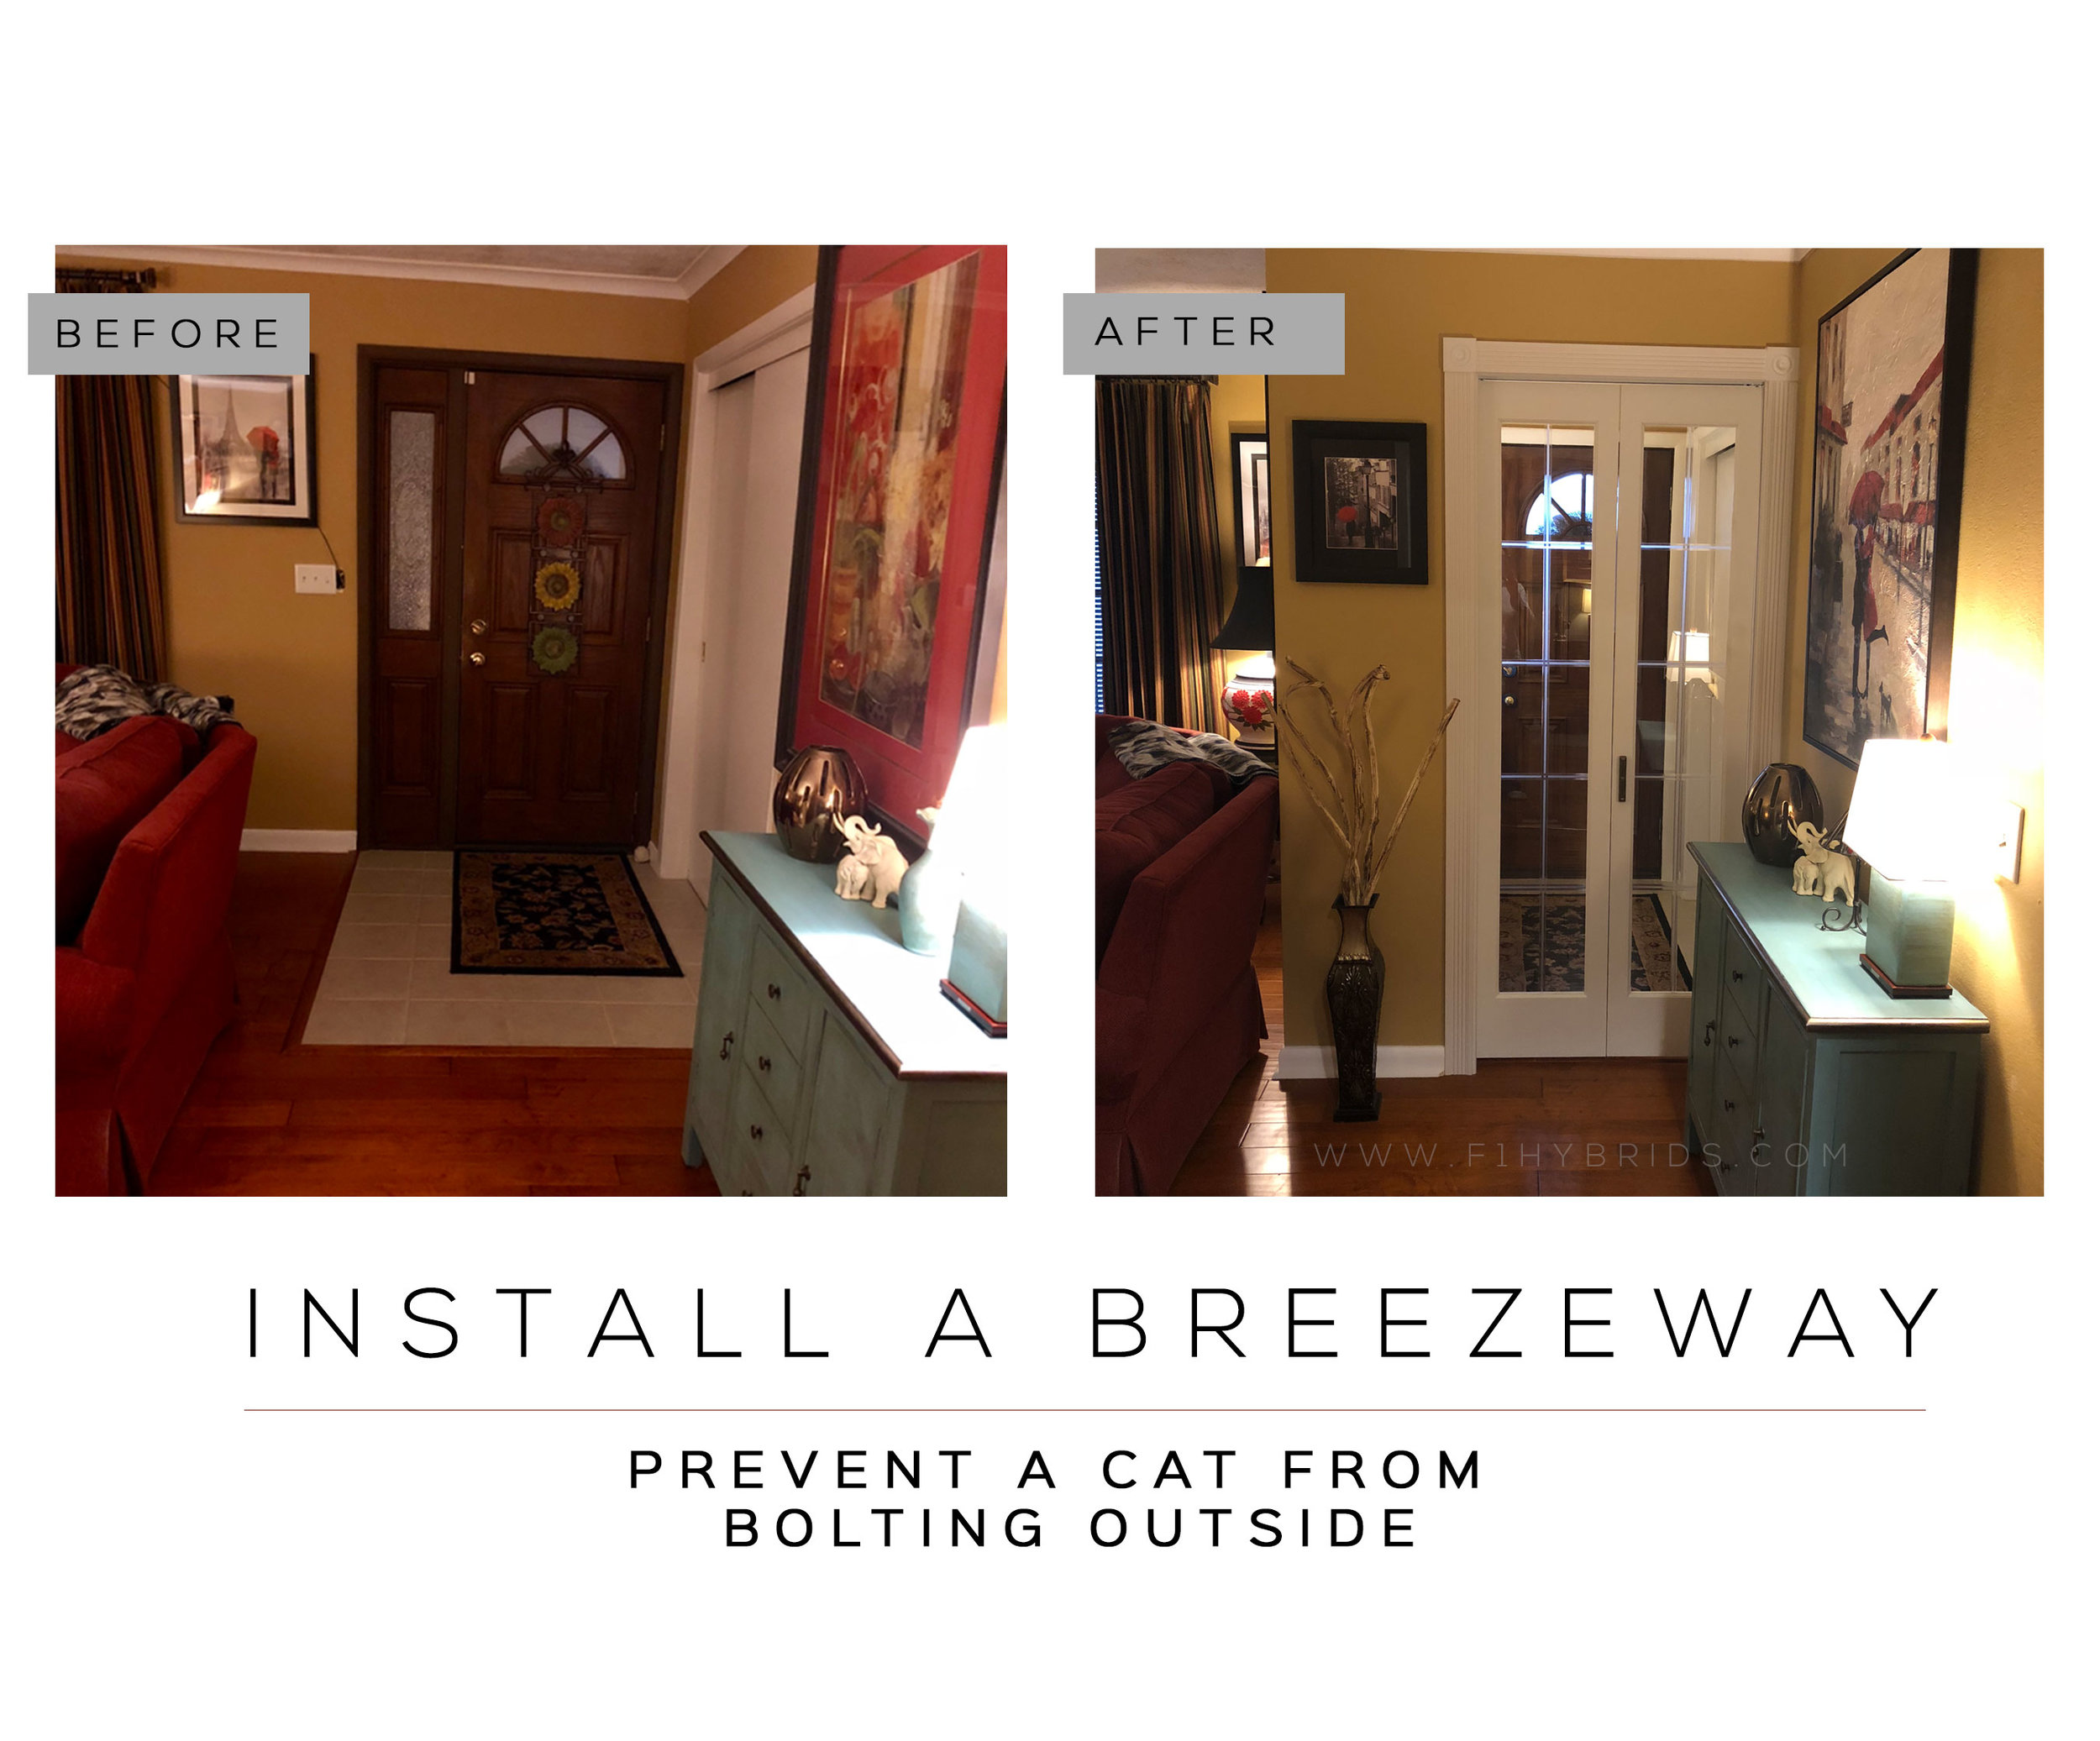 Install a breezeway to prevent a cat from escaping outside.